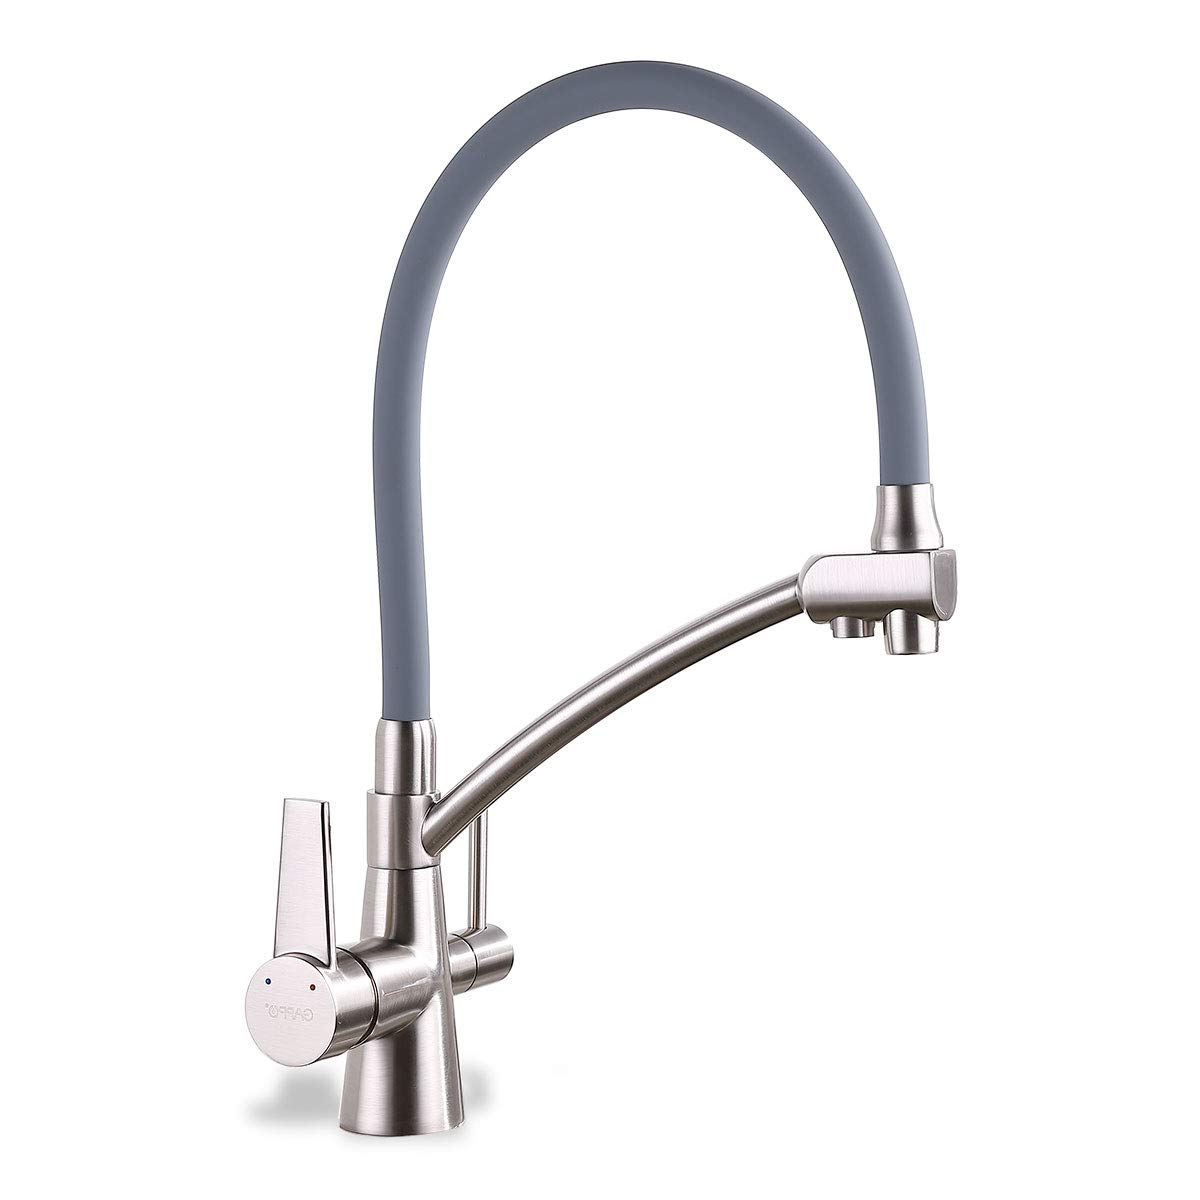 GAPPO Pull Out Kitchen Faucet with Lead Free Drink Water Filter Function Brushed Nickel